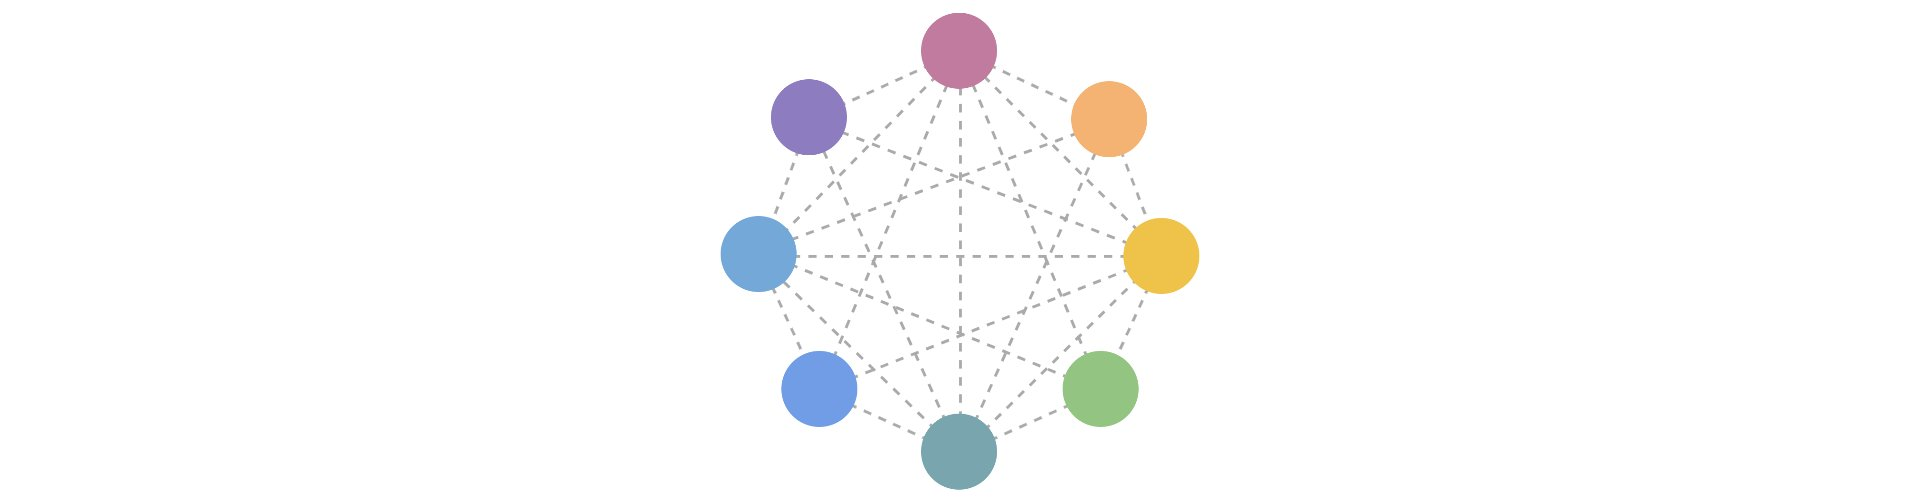 The Small Web logo: Multi-coloured circles, arranged around the circumference of a circle, connected to one another by dashed lines.